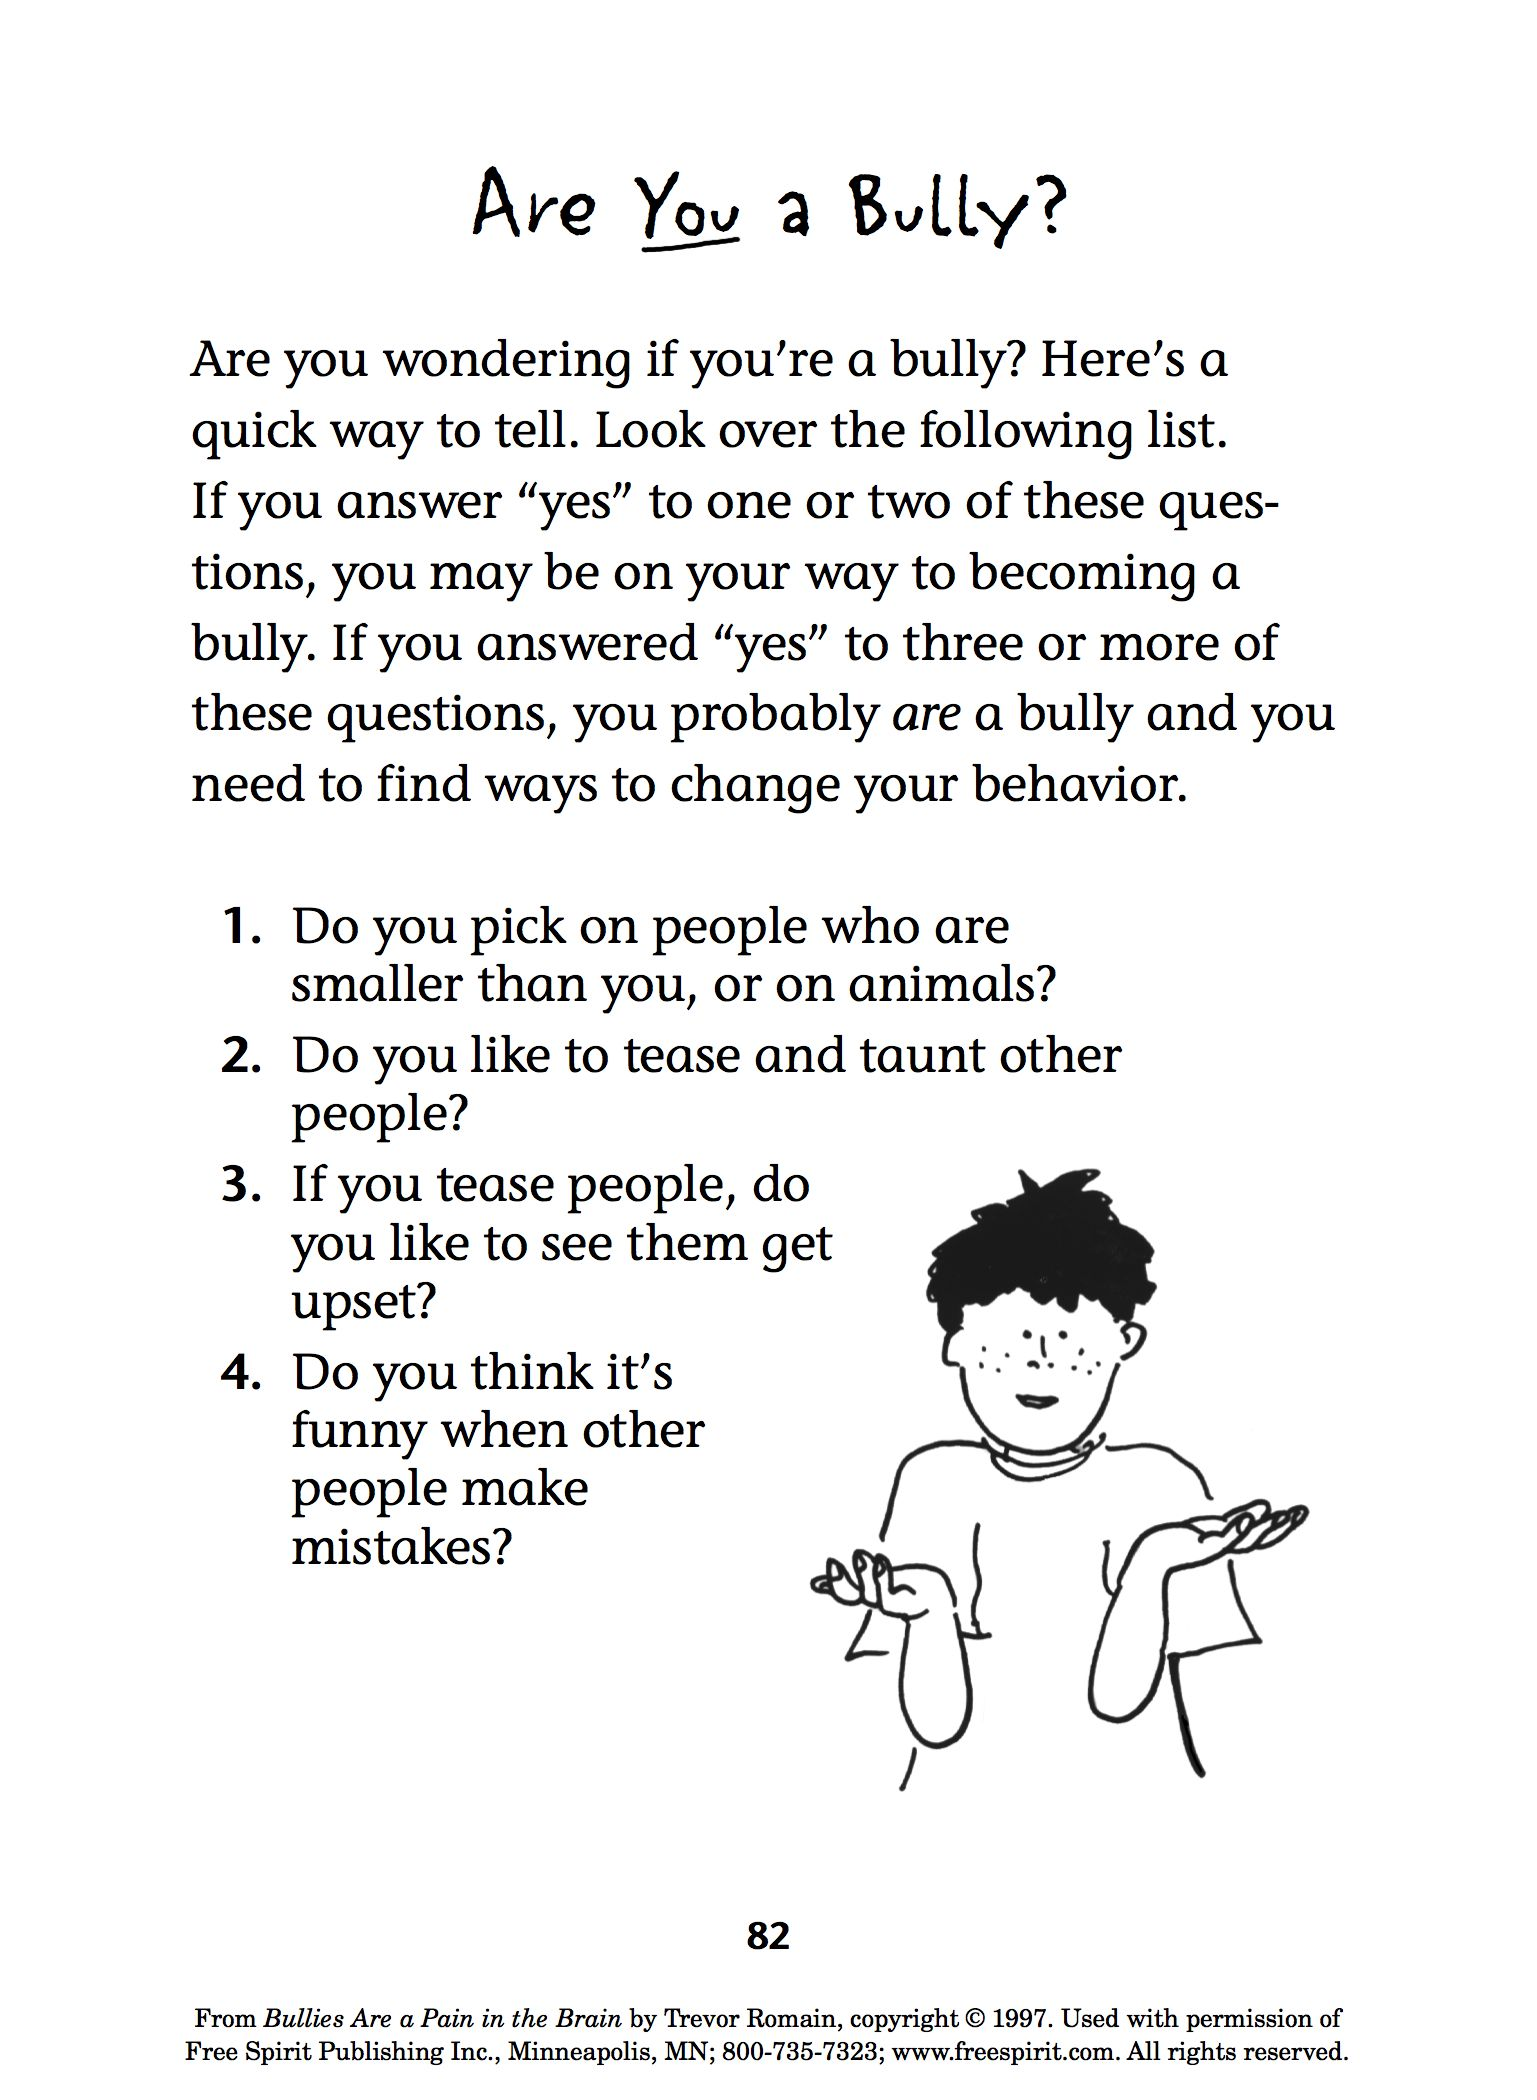 Free Bullying Prevention Printable Quiz For Teachers